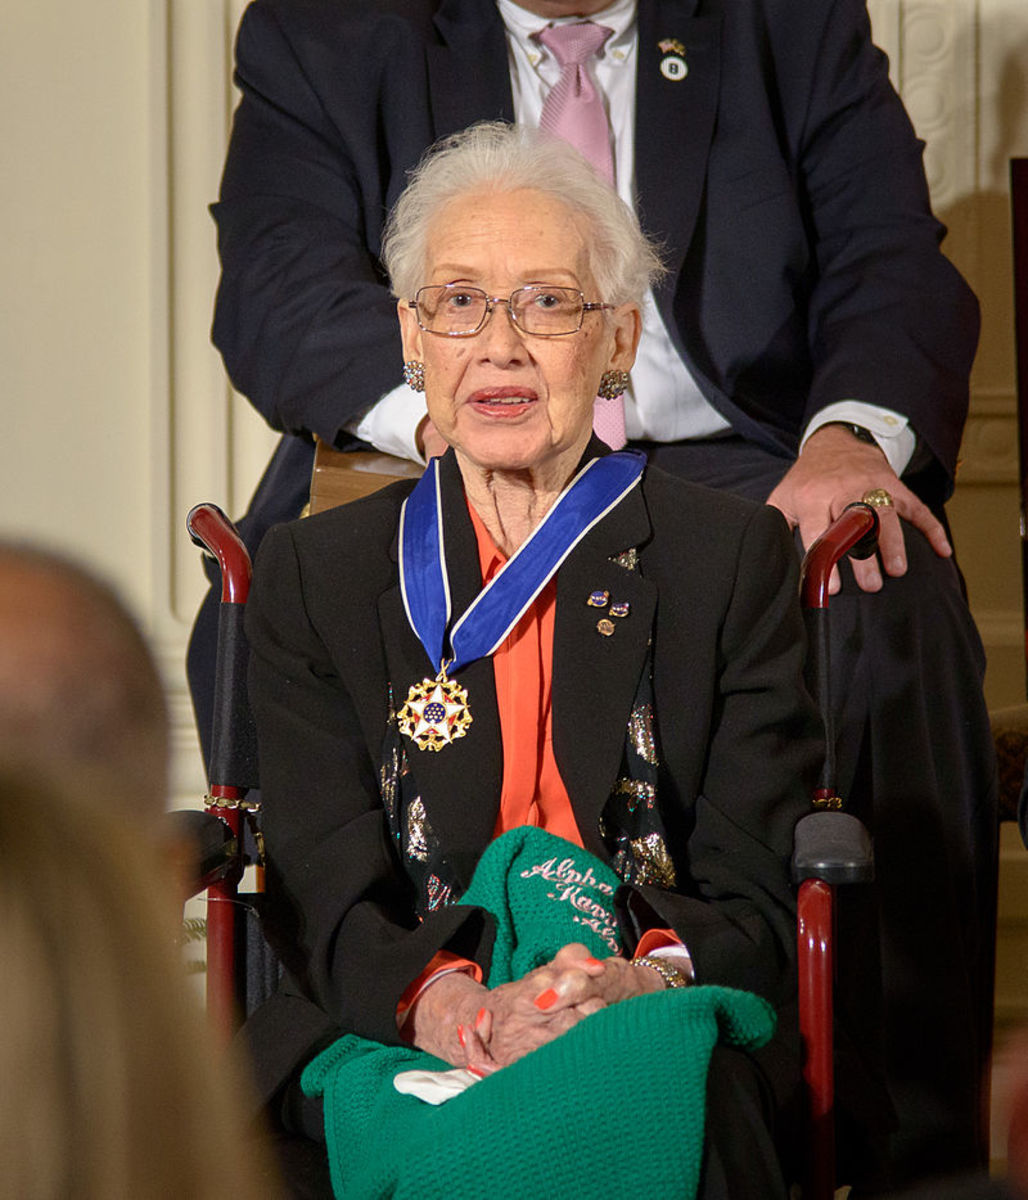 Katherine Johnson receiving the Presidential Medal of Freedom in 2015.